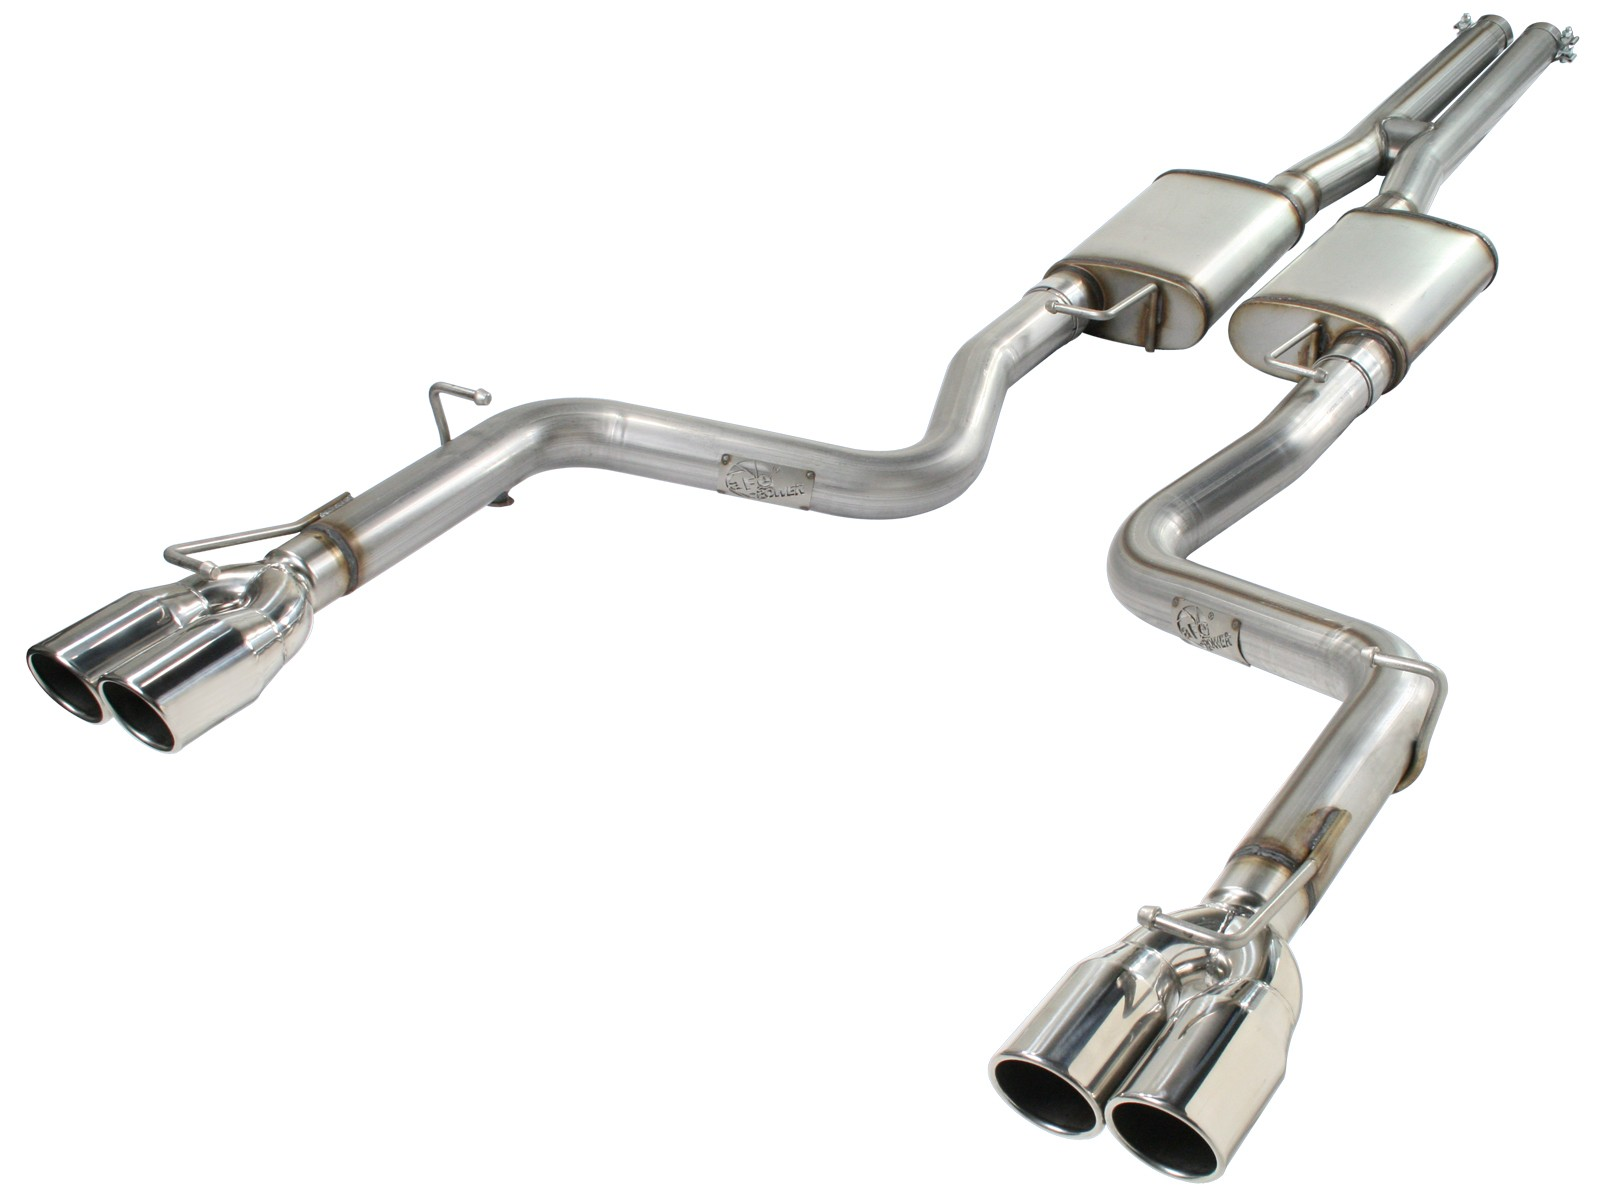 """aFe POWER 49-42017 MACH Force-Xp 3"""" 409 Stainless Steel Cat-Back Exhaust System"""